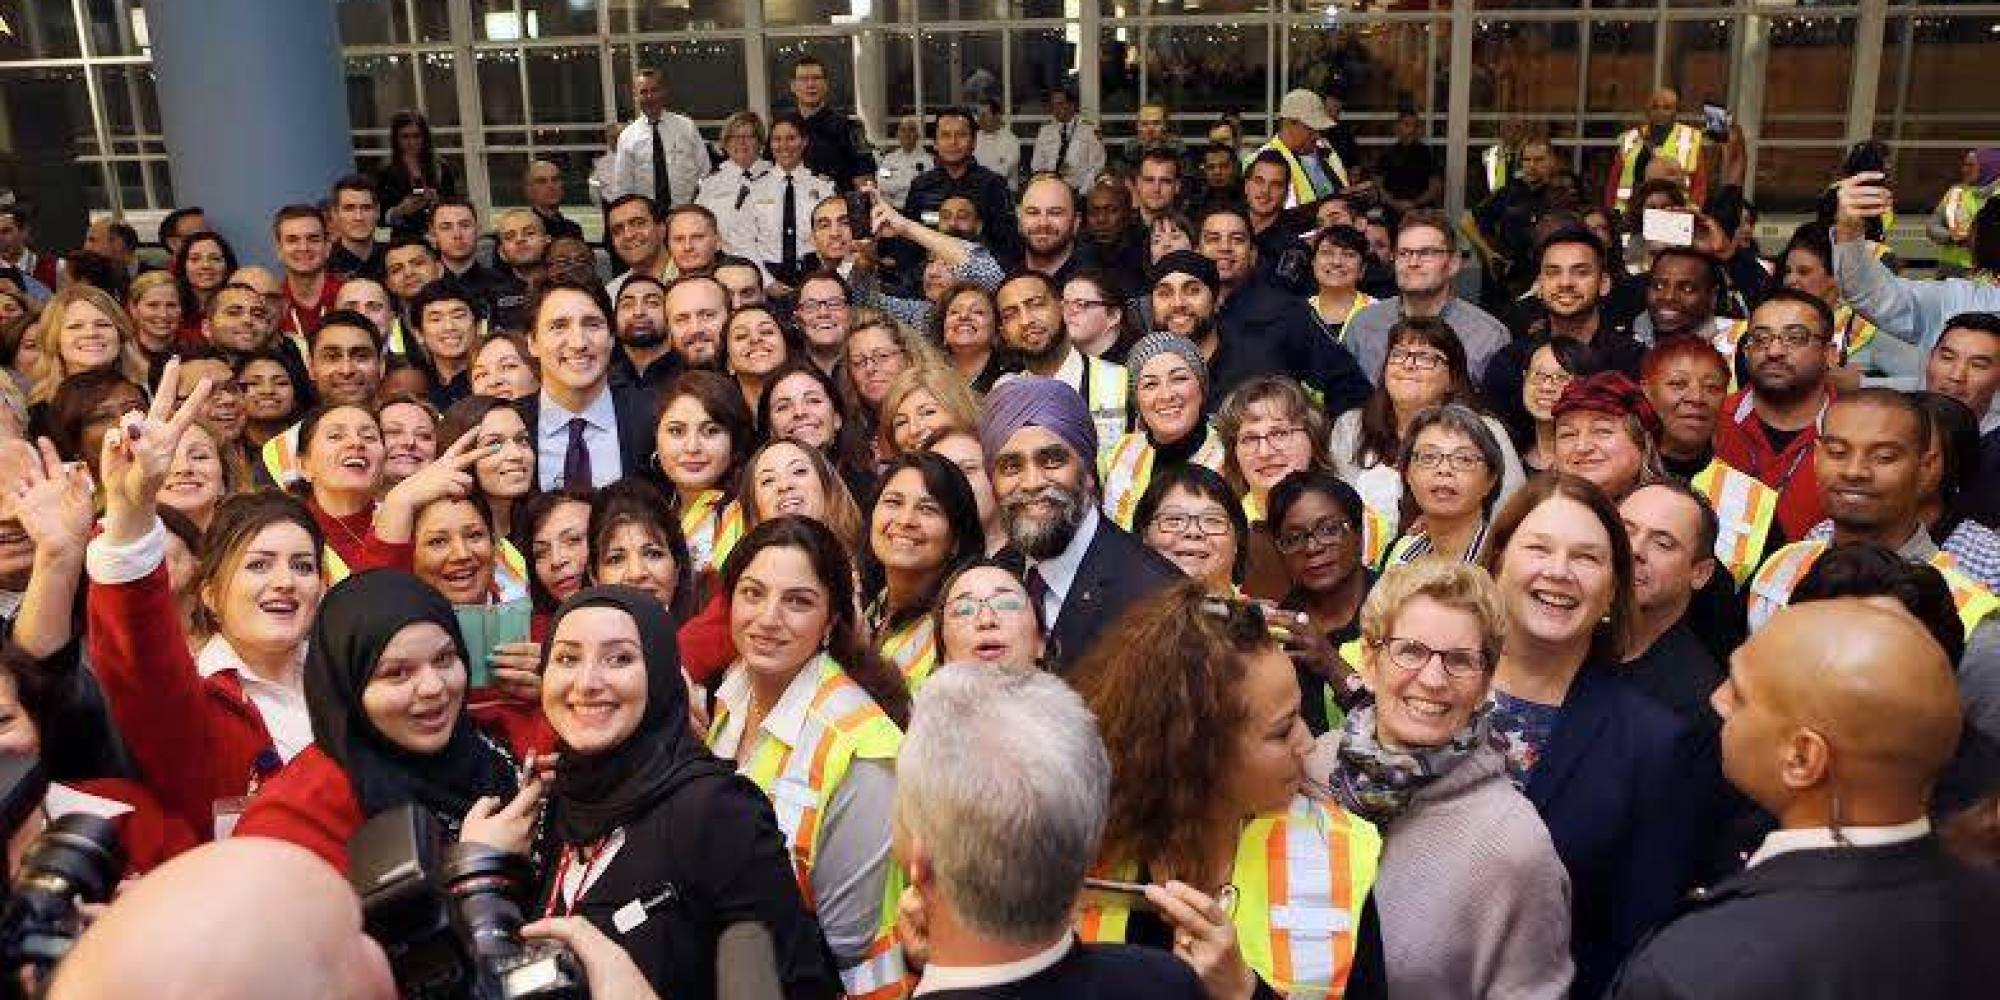 refugees in canada While anecdotal, many interviews with refugees suggest canada's reputation for inclusiveness has been a deciding factor in the decision to cross the border.